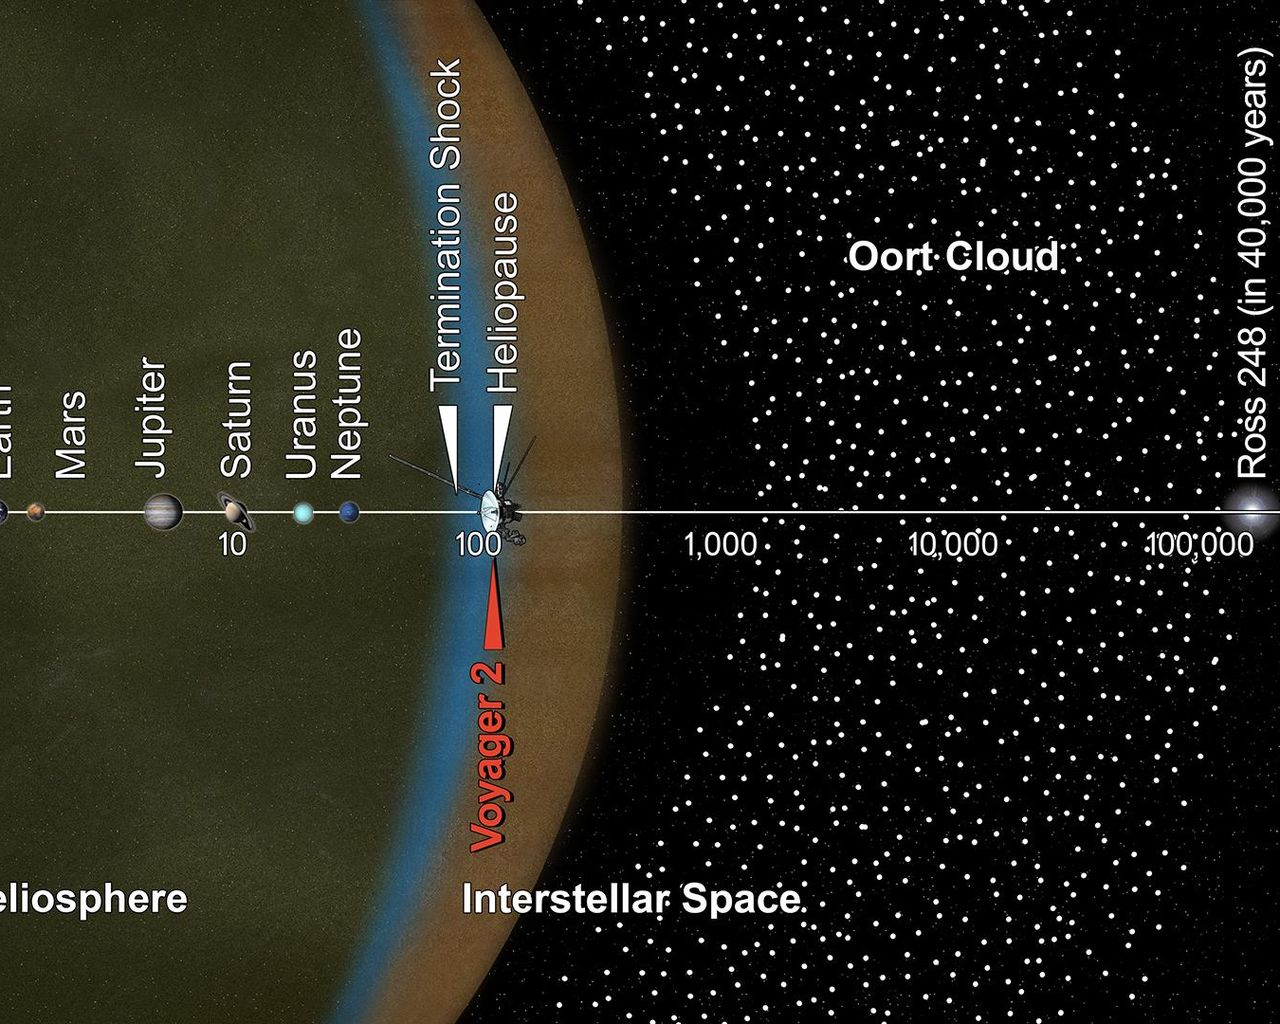 Space Images Voyager 2 and the Scale of the Solar System Artist 1280x1024